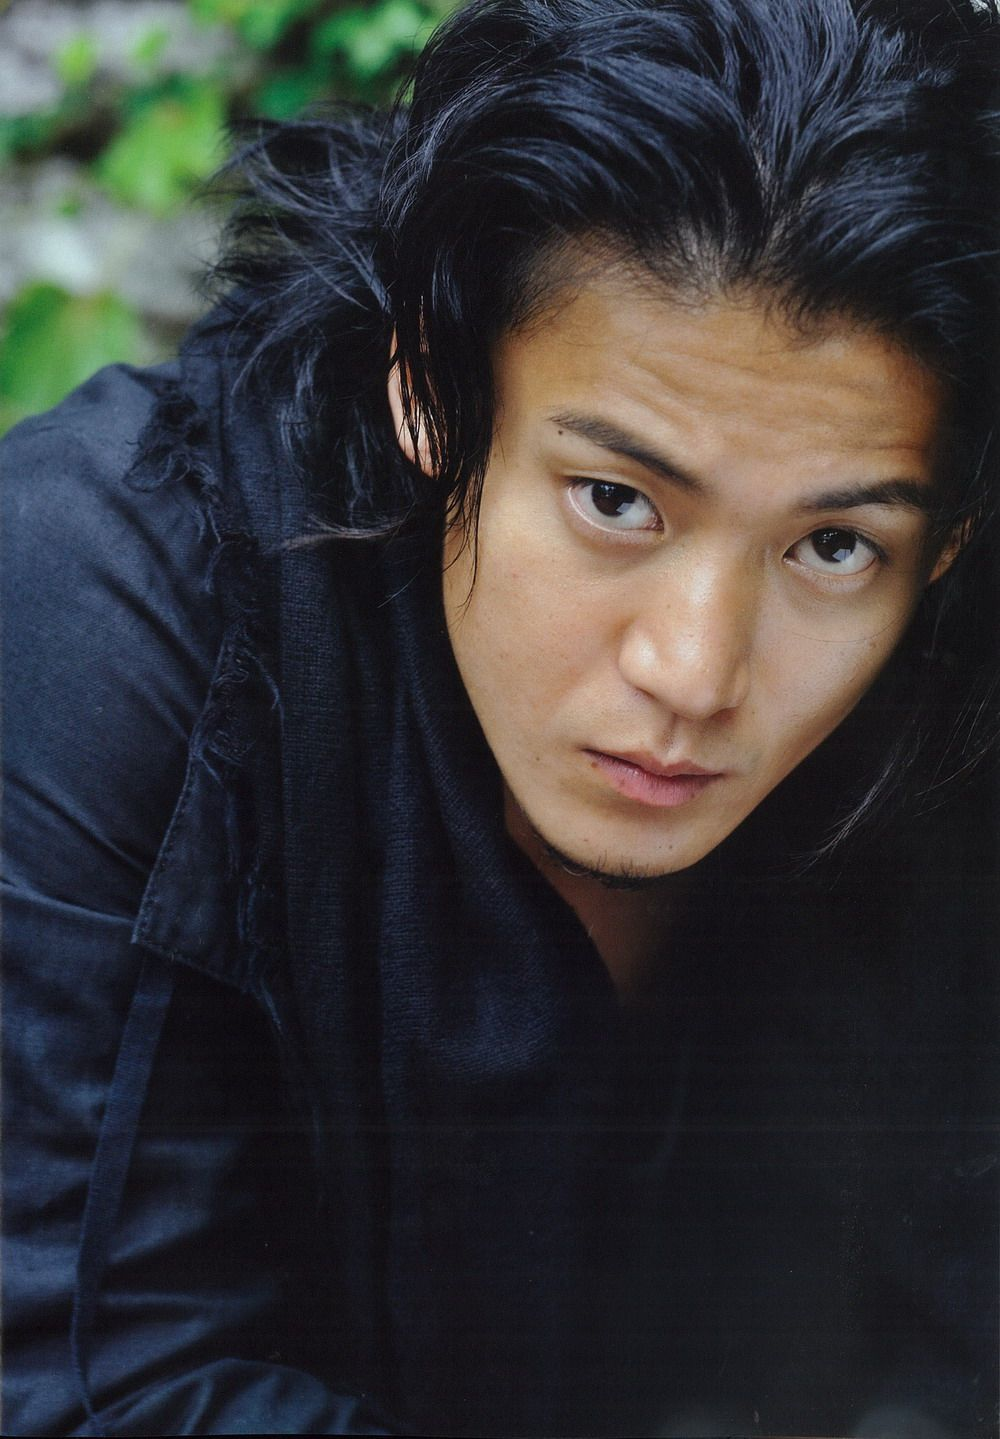 10 hot japanese actors who are complete bias ruiners | japanese